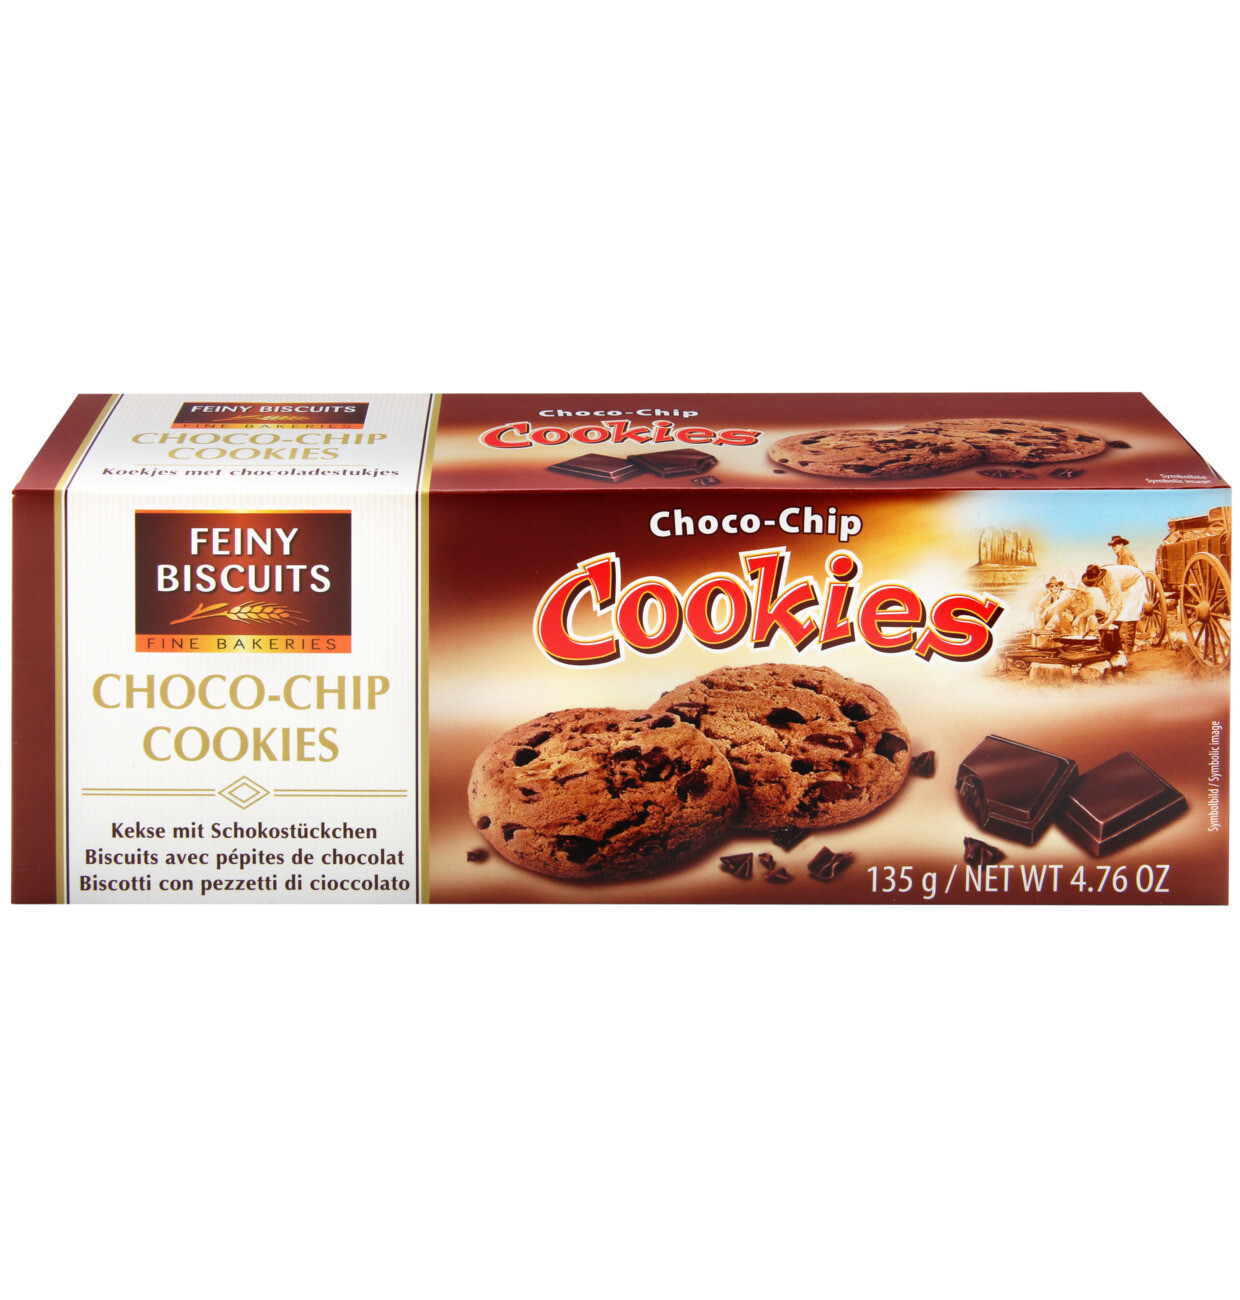 Feiny Biscuits - Chocolate Chip Cookies 135g